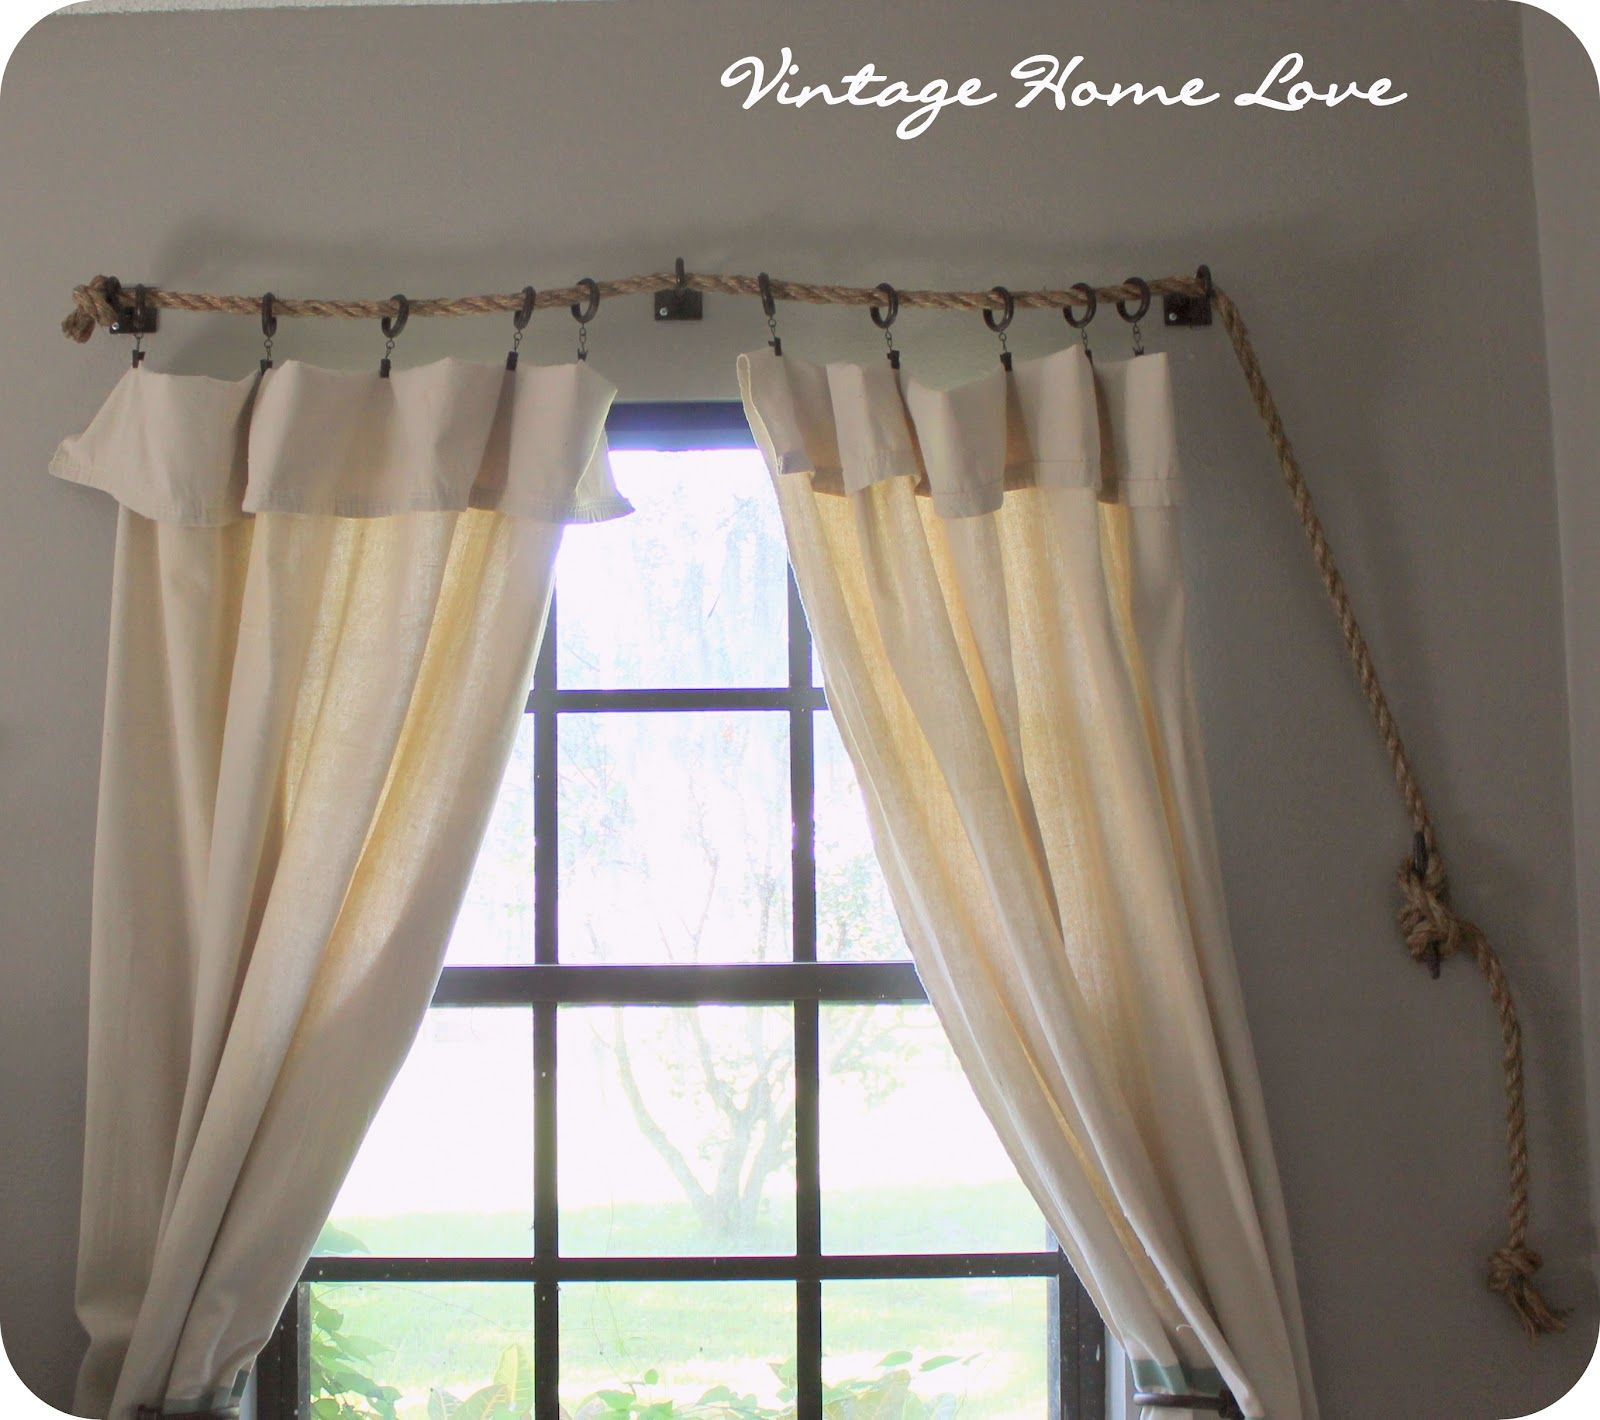 by decor sherry valances stylish tuck unbelievable window sale themed magnificent stunning styles beach nautical inspired brown curtains on ii asian enrapture and full china im portia art drapes size tier treatments kline treatment valance of